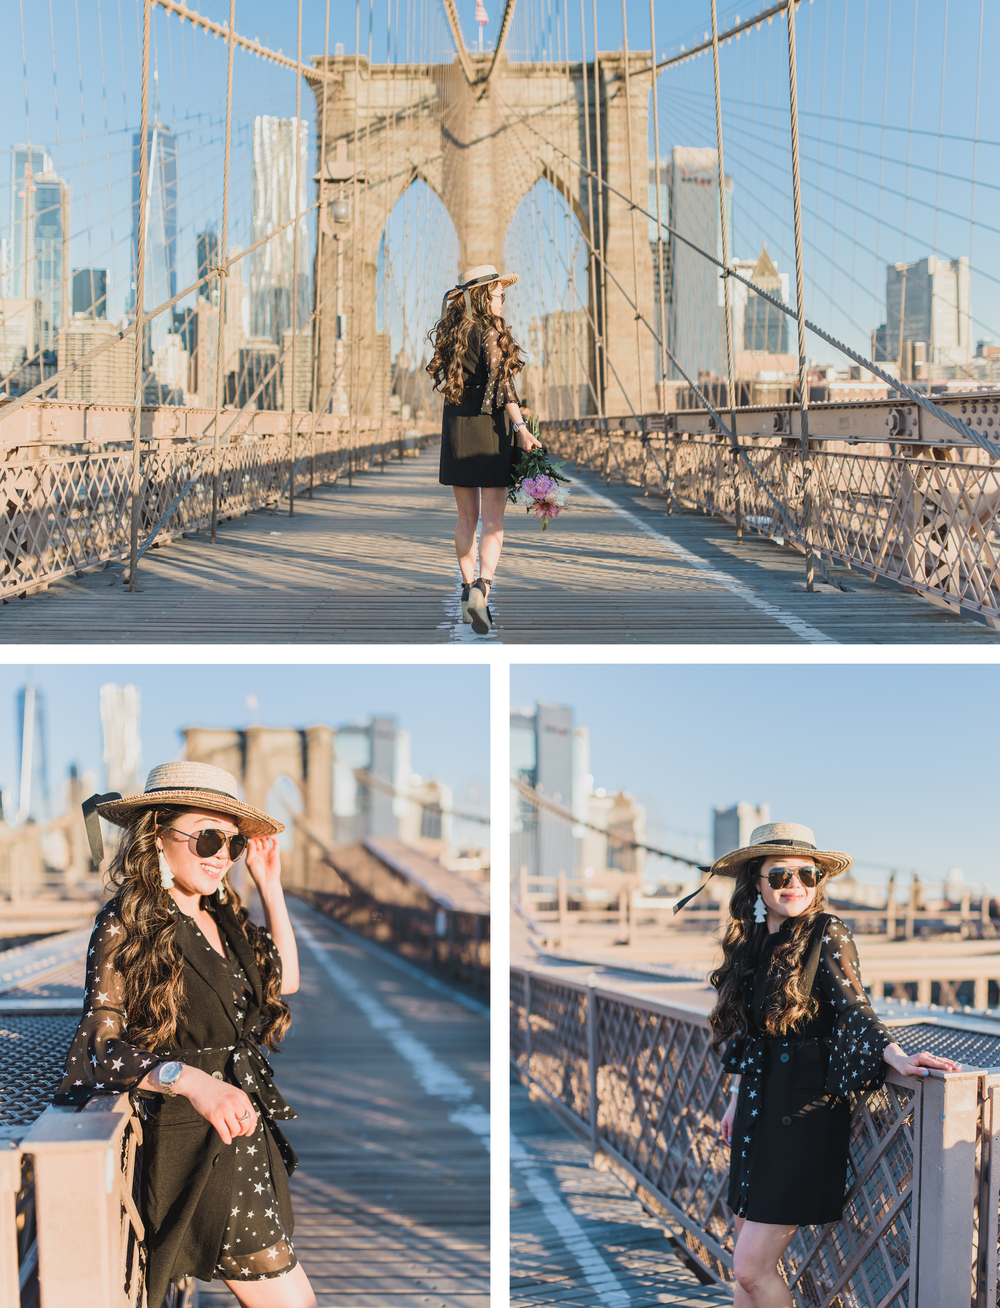 Grace Lee Brooklyn Bridge_Gallery 2.png